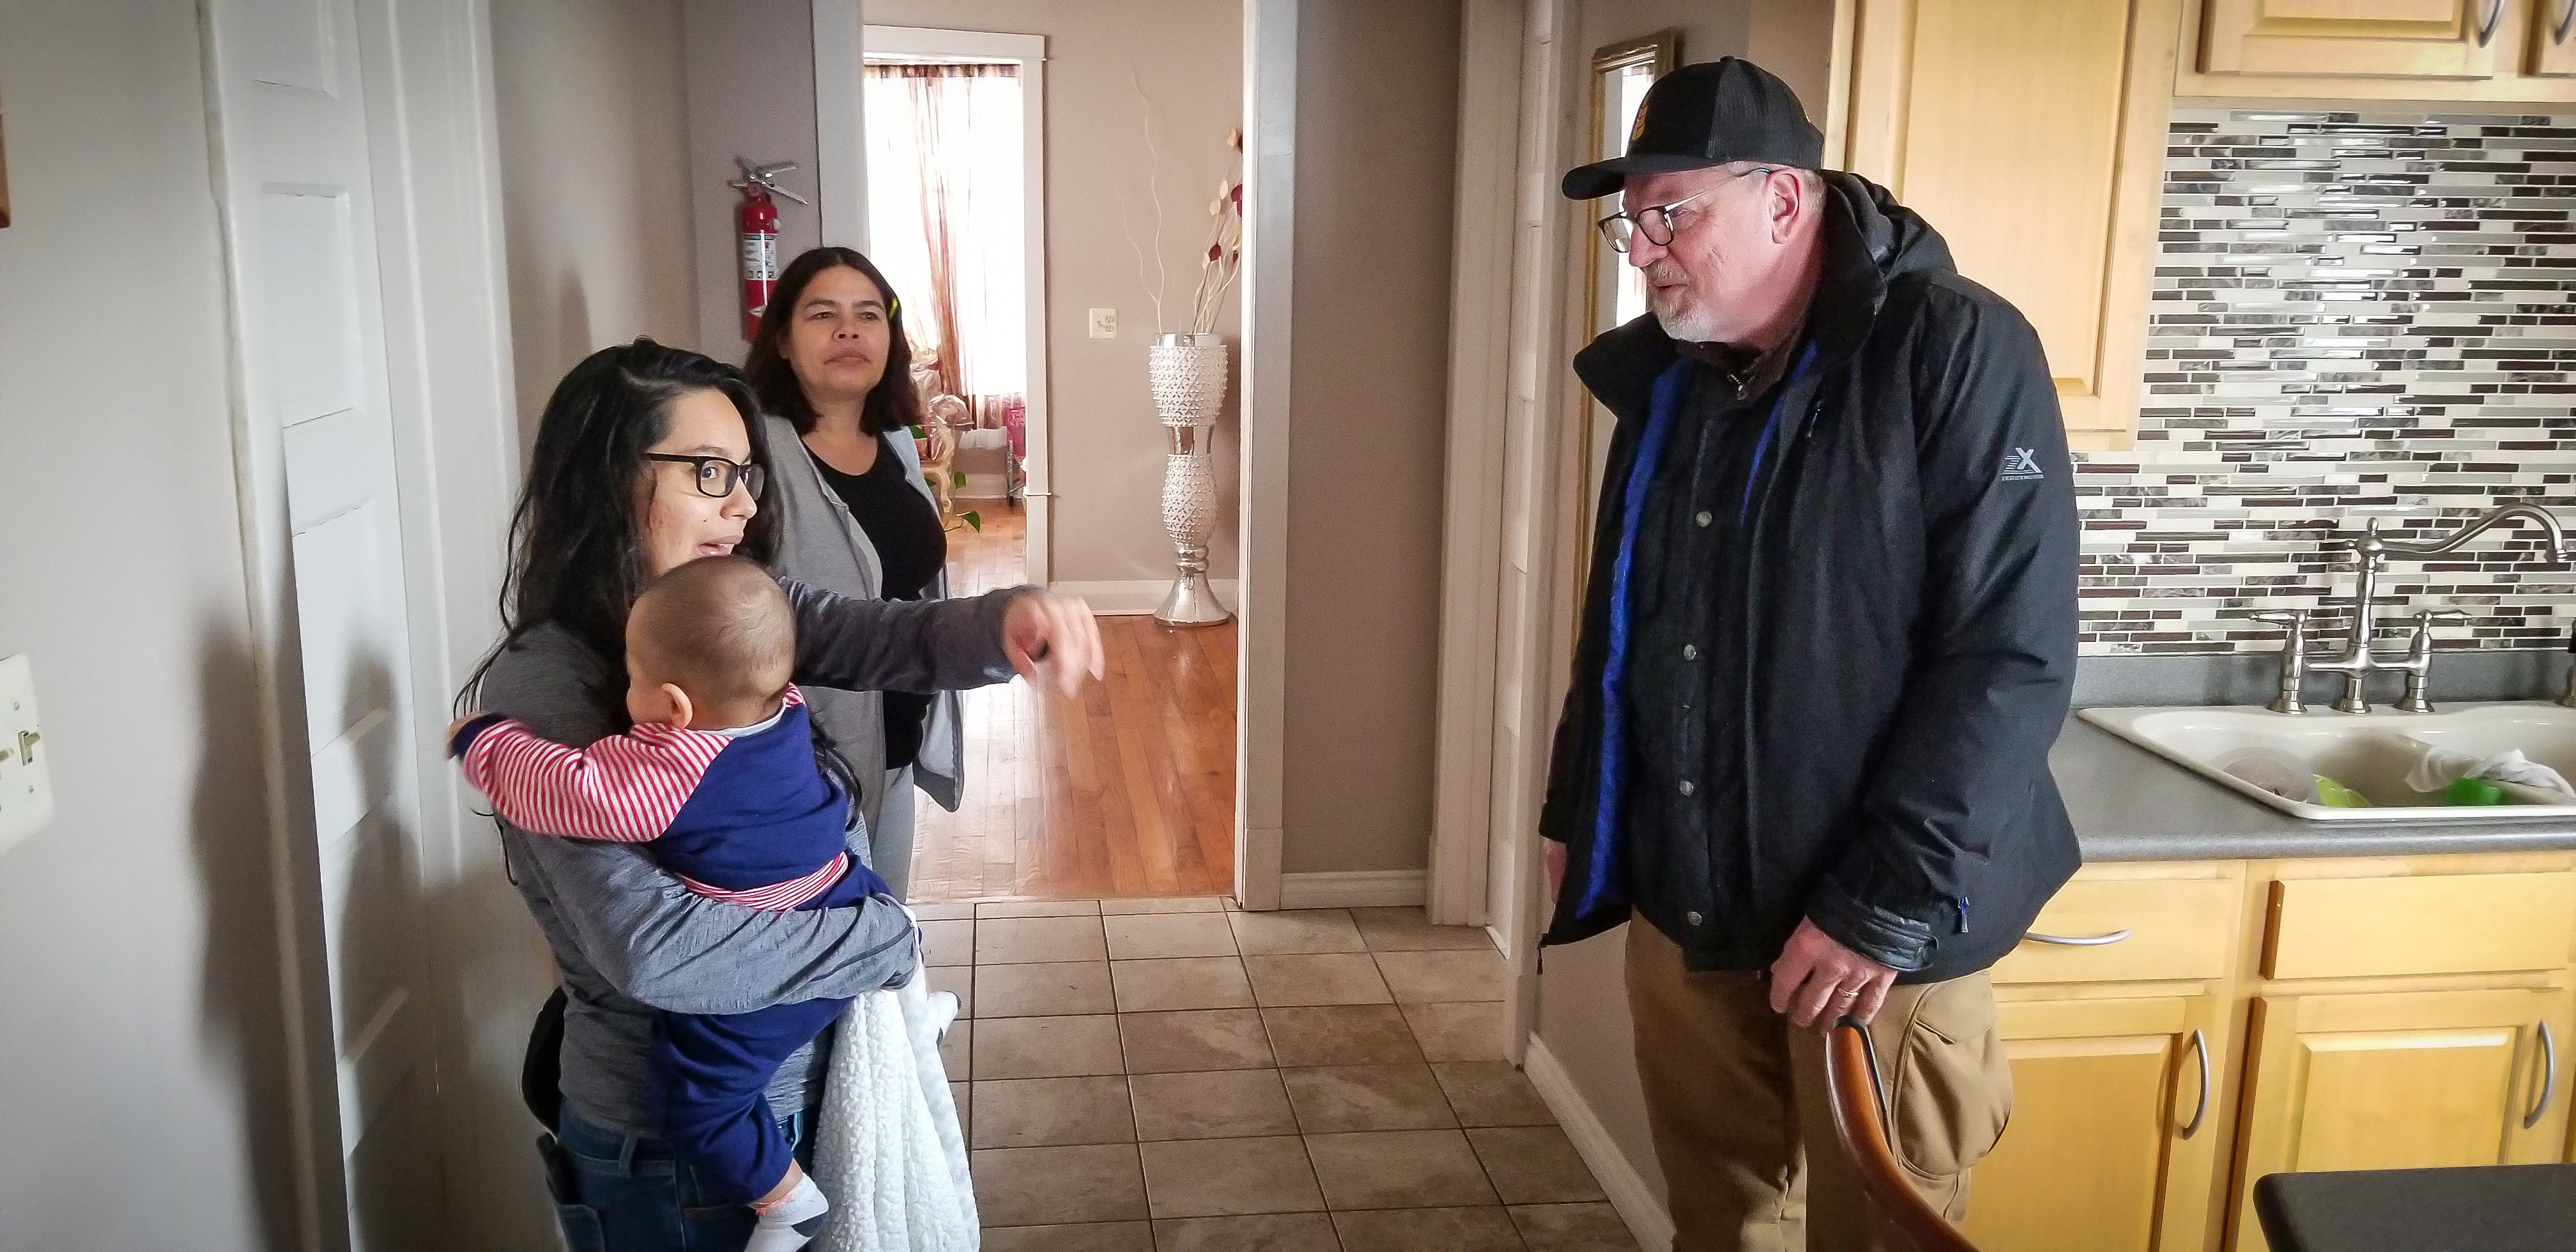 Harry Meyer visits his childhood home in Gage Park and talks with Beatriz Arzate and her family, who live in the home today. In 1970, the entire Southwest Side was considered middle income. Today, average incomes in the area are far under what UIC researchers consider